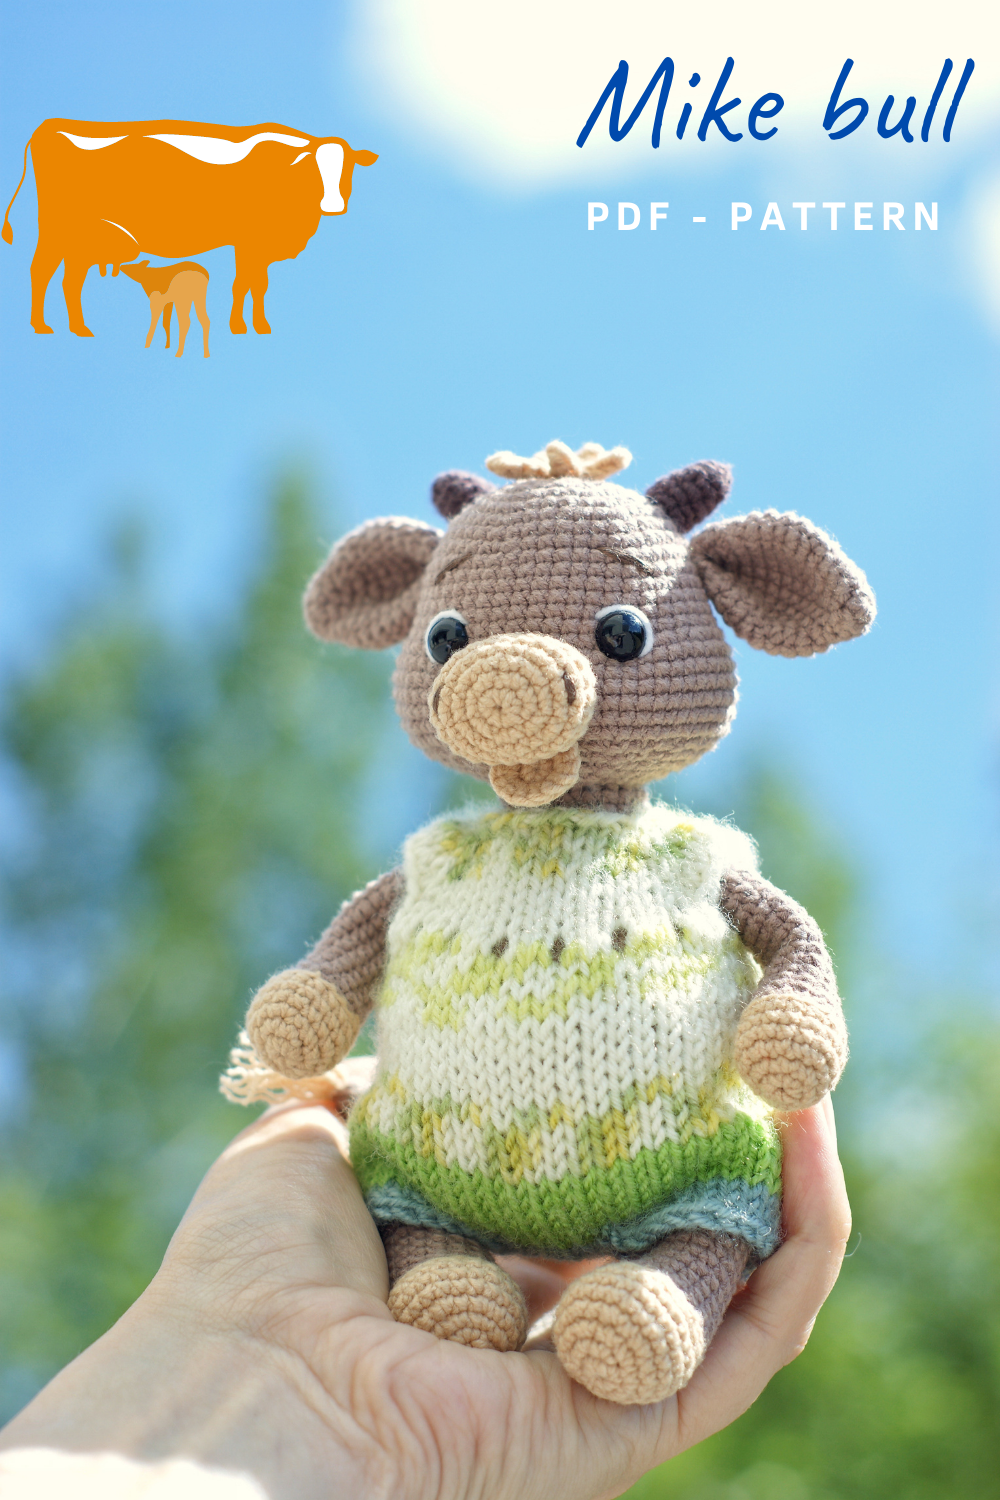 Mike bull - Amigurumi crochet pattern (English only). PDF pattern, instant download.